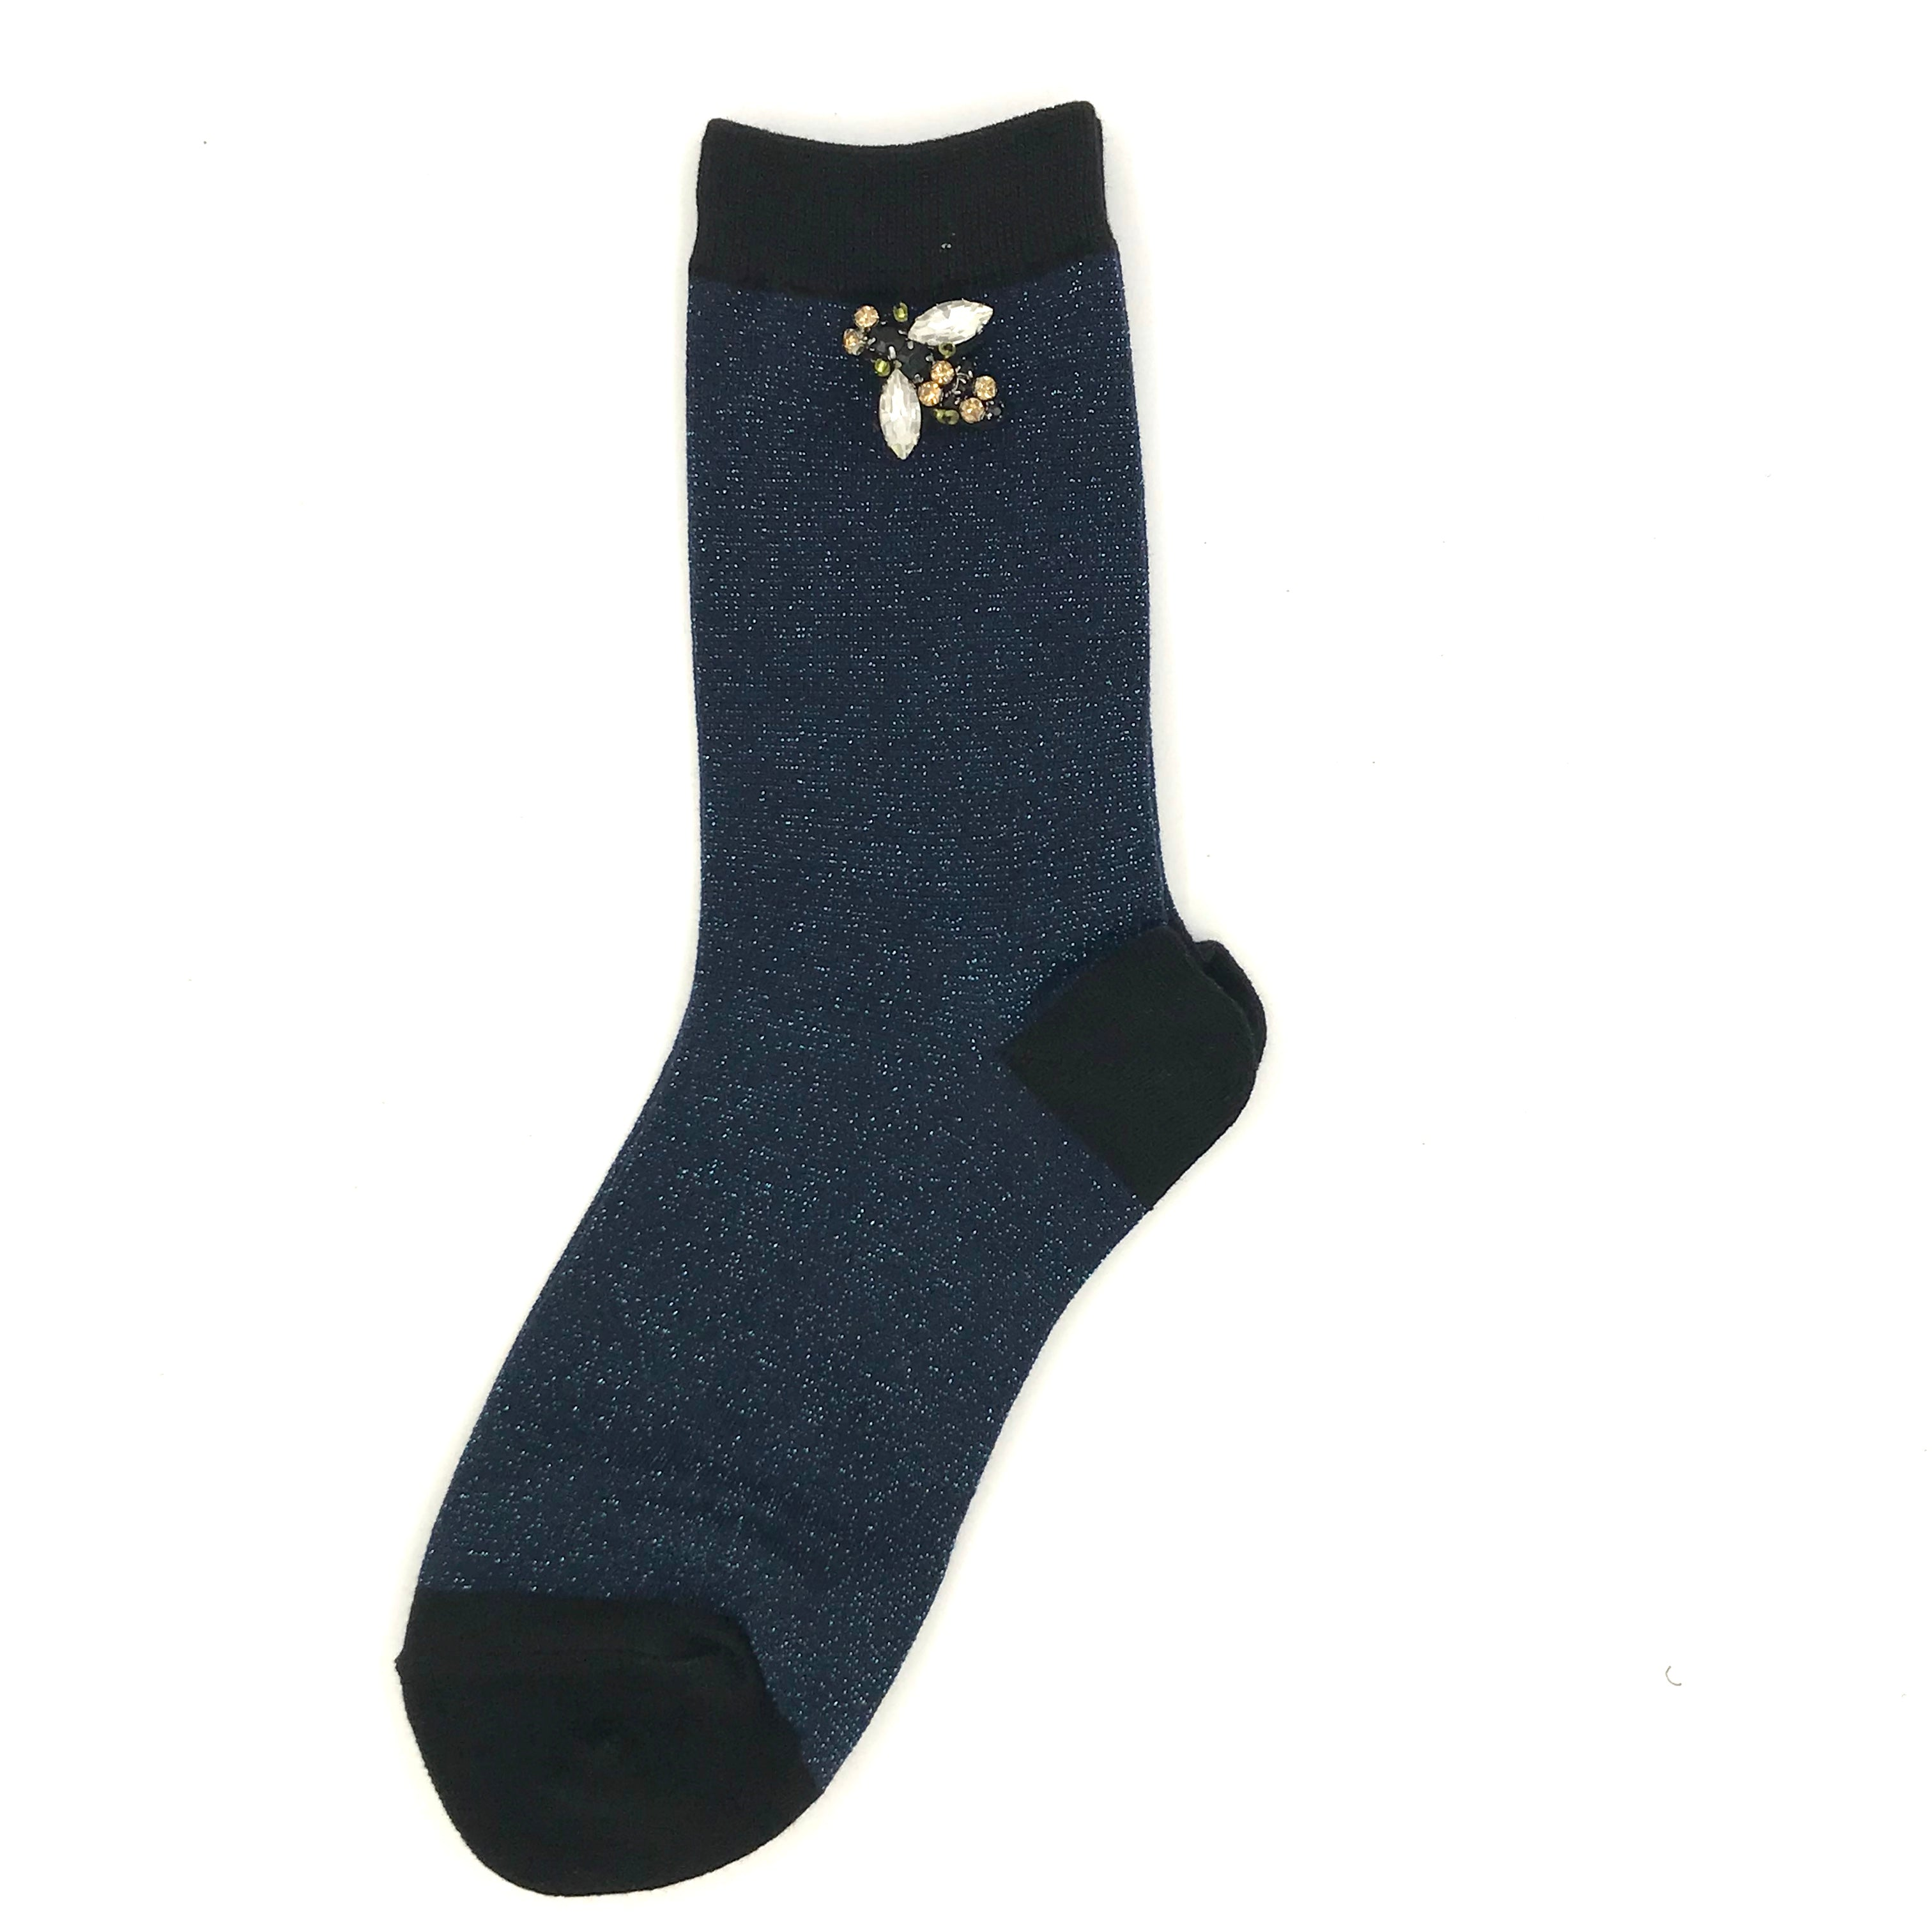 Tokyo socks with or without a bee pin